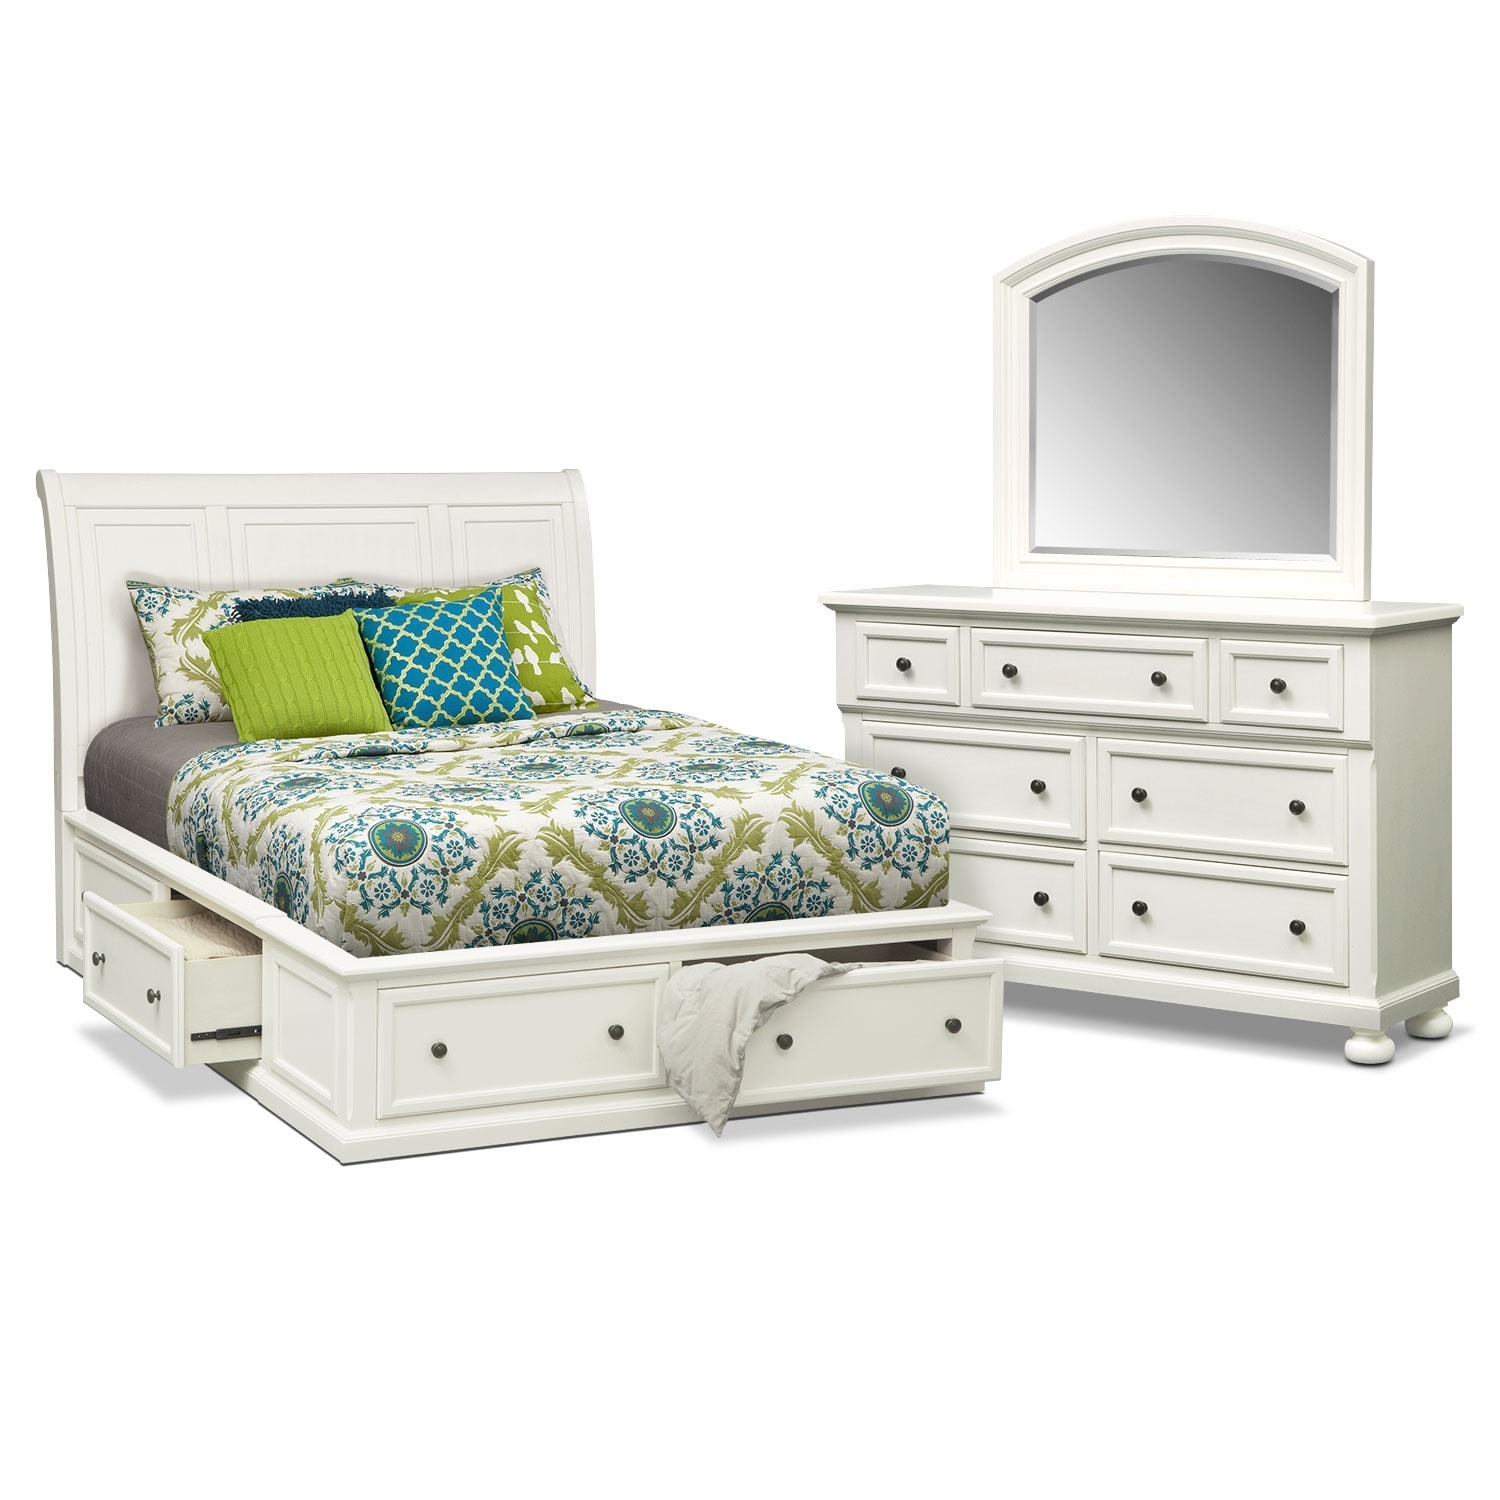 Storage Bedroom Furniture: Hanover 5-Piece Queen Storage Bedroom Set - White